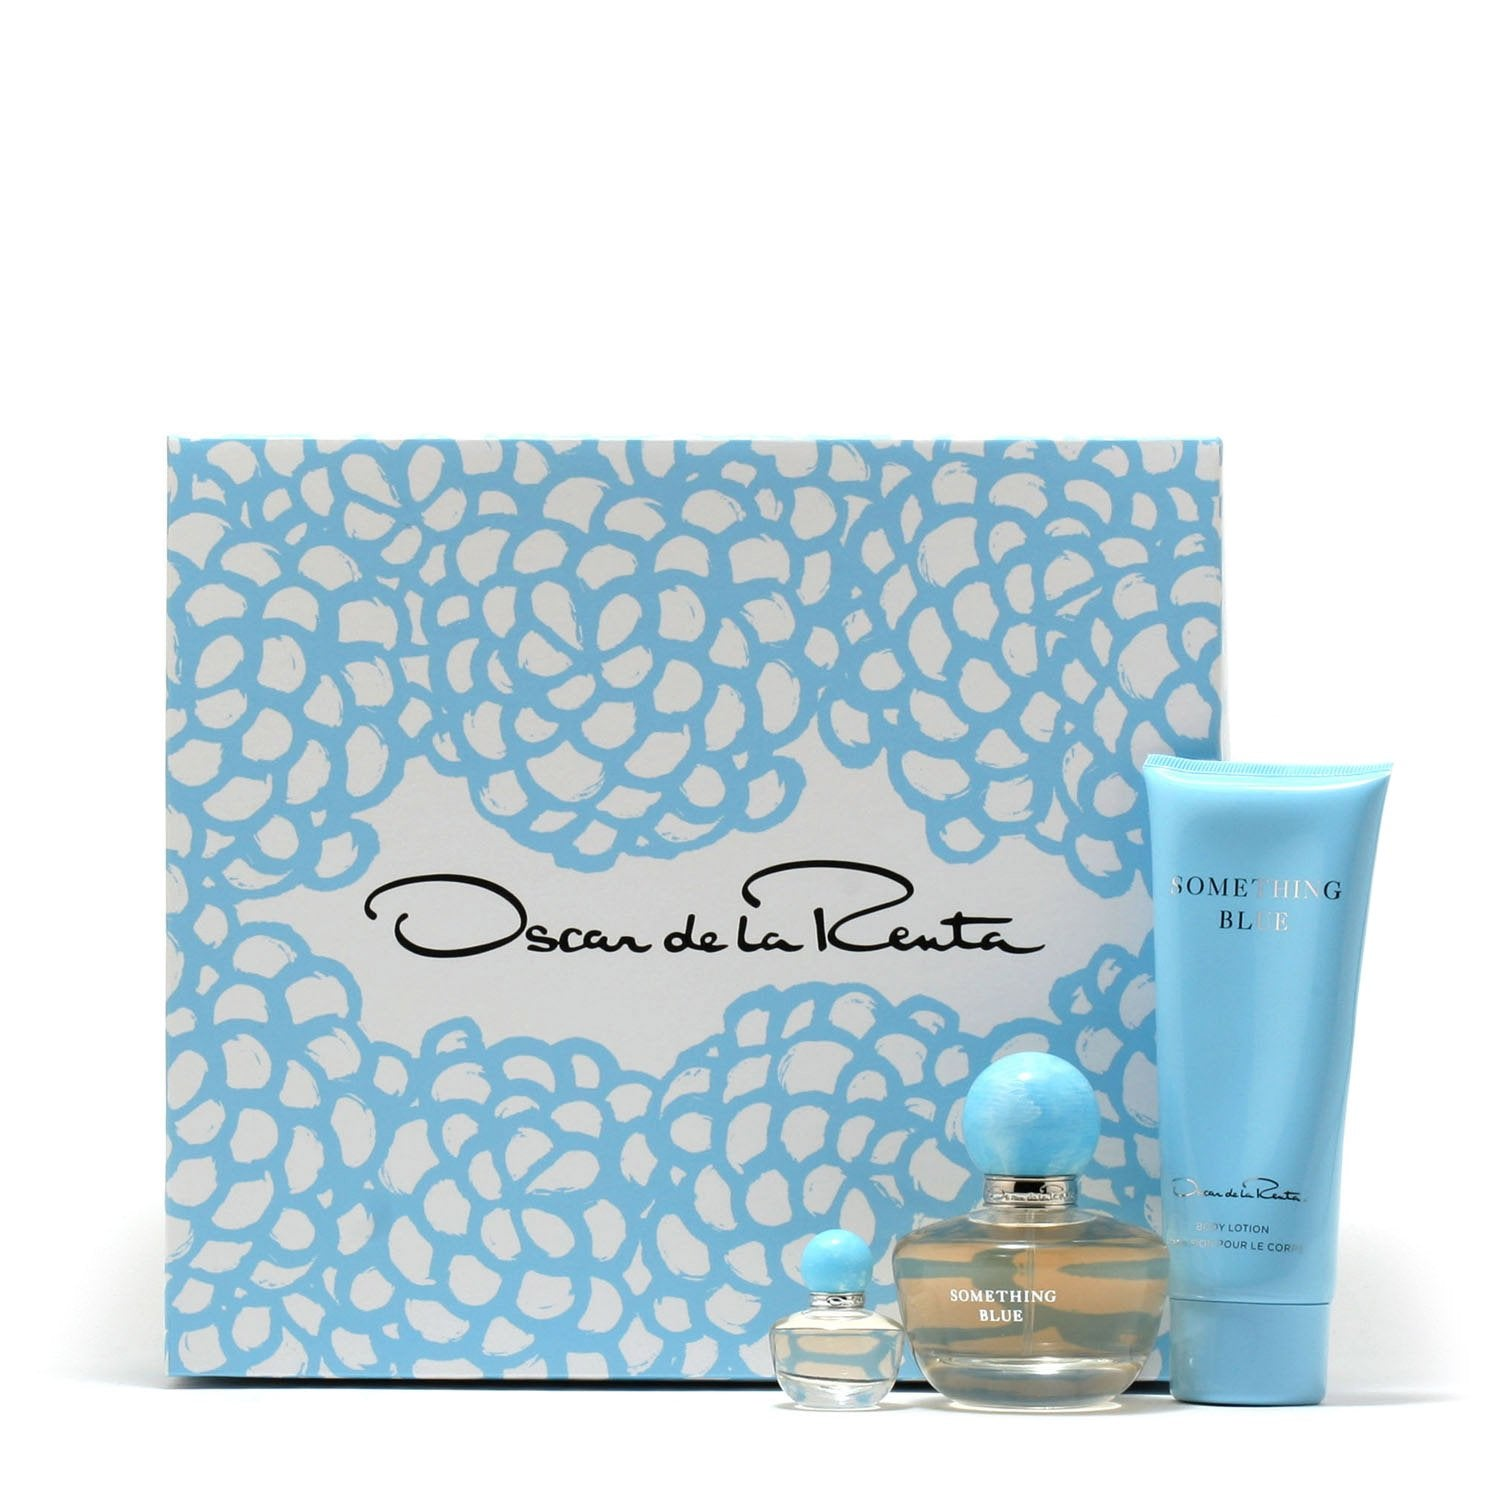 Perfume Sets - OSCAR DE LA RENTA SOMETHING BLUE FOR WOMEN - GIFT SET